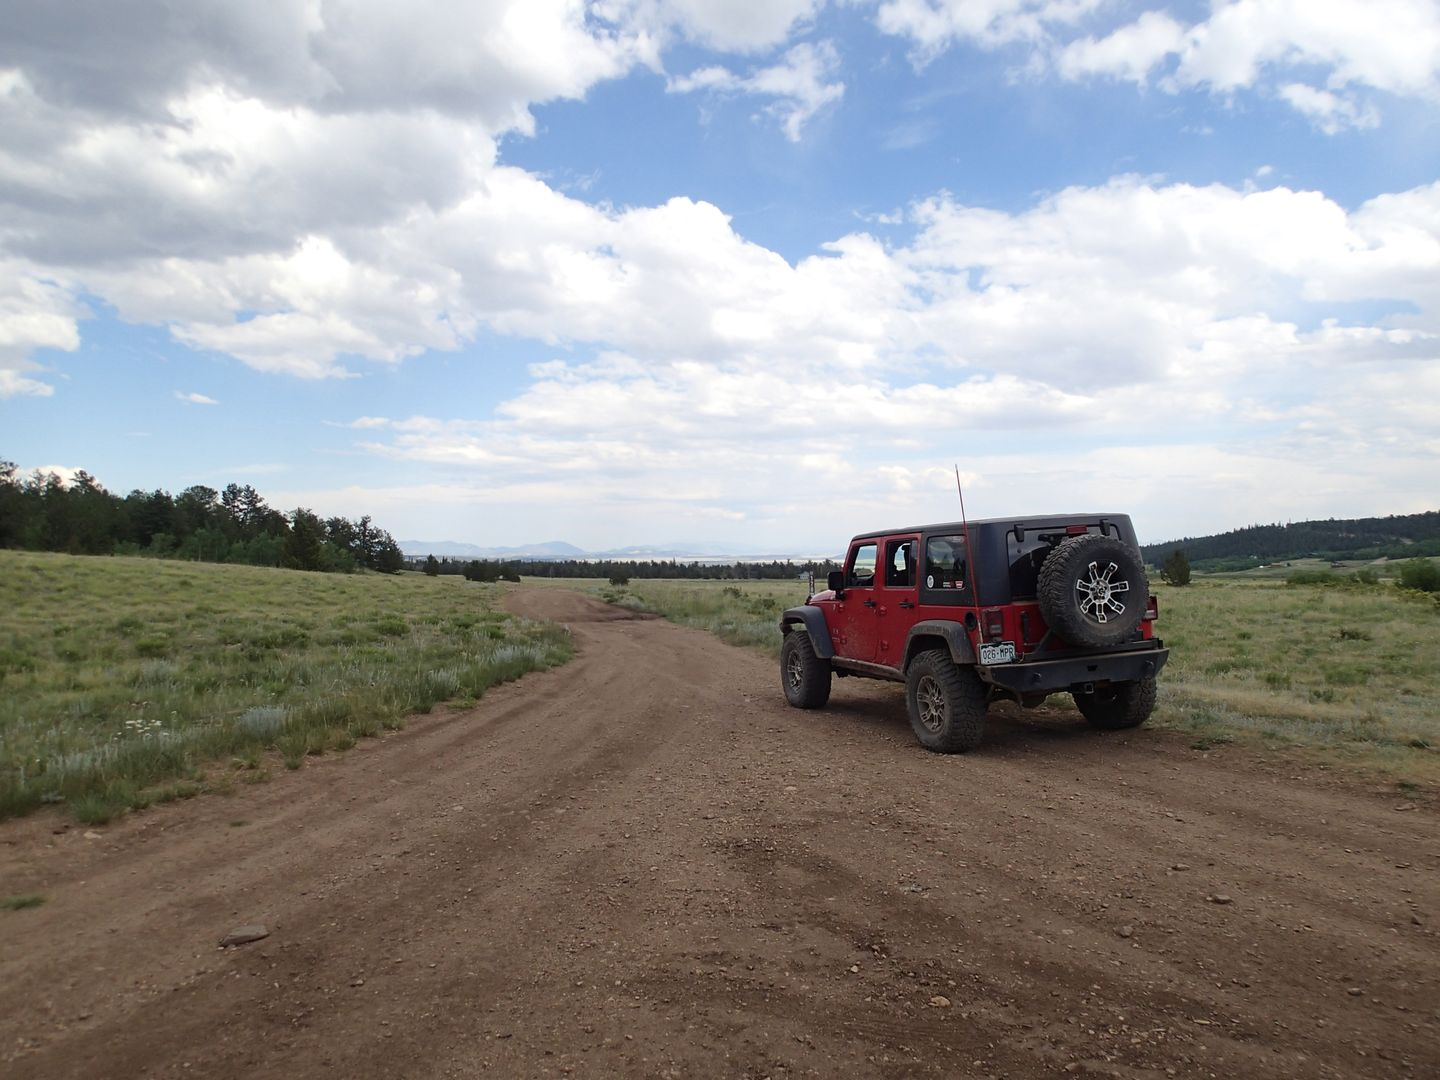 Brown's Pass  - Waypoint 7: Intersection FS Road 179